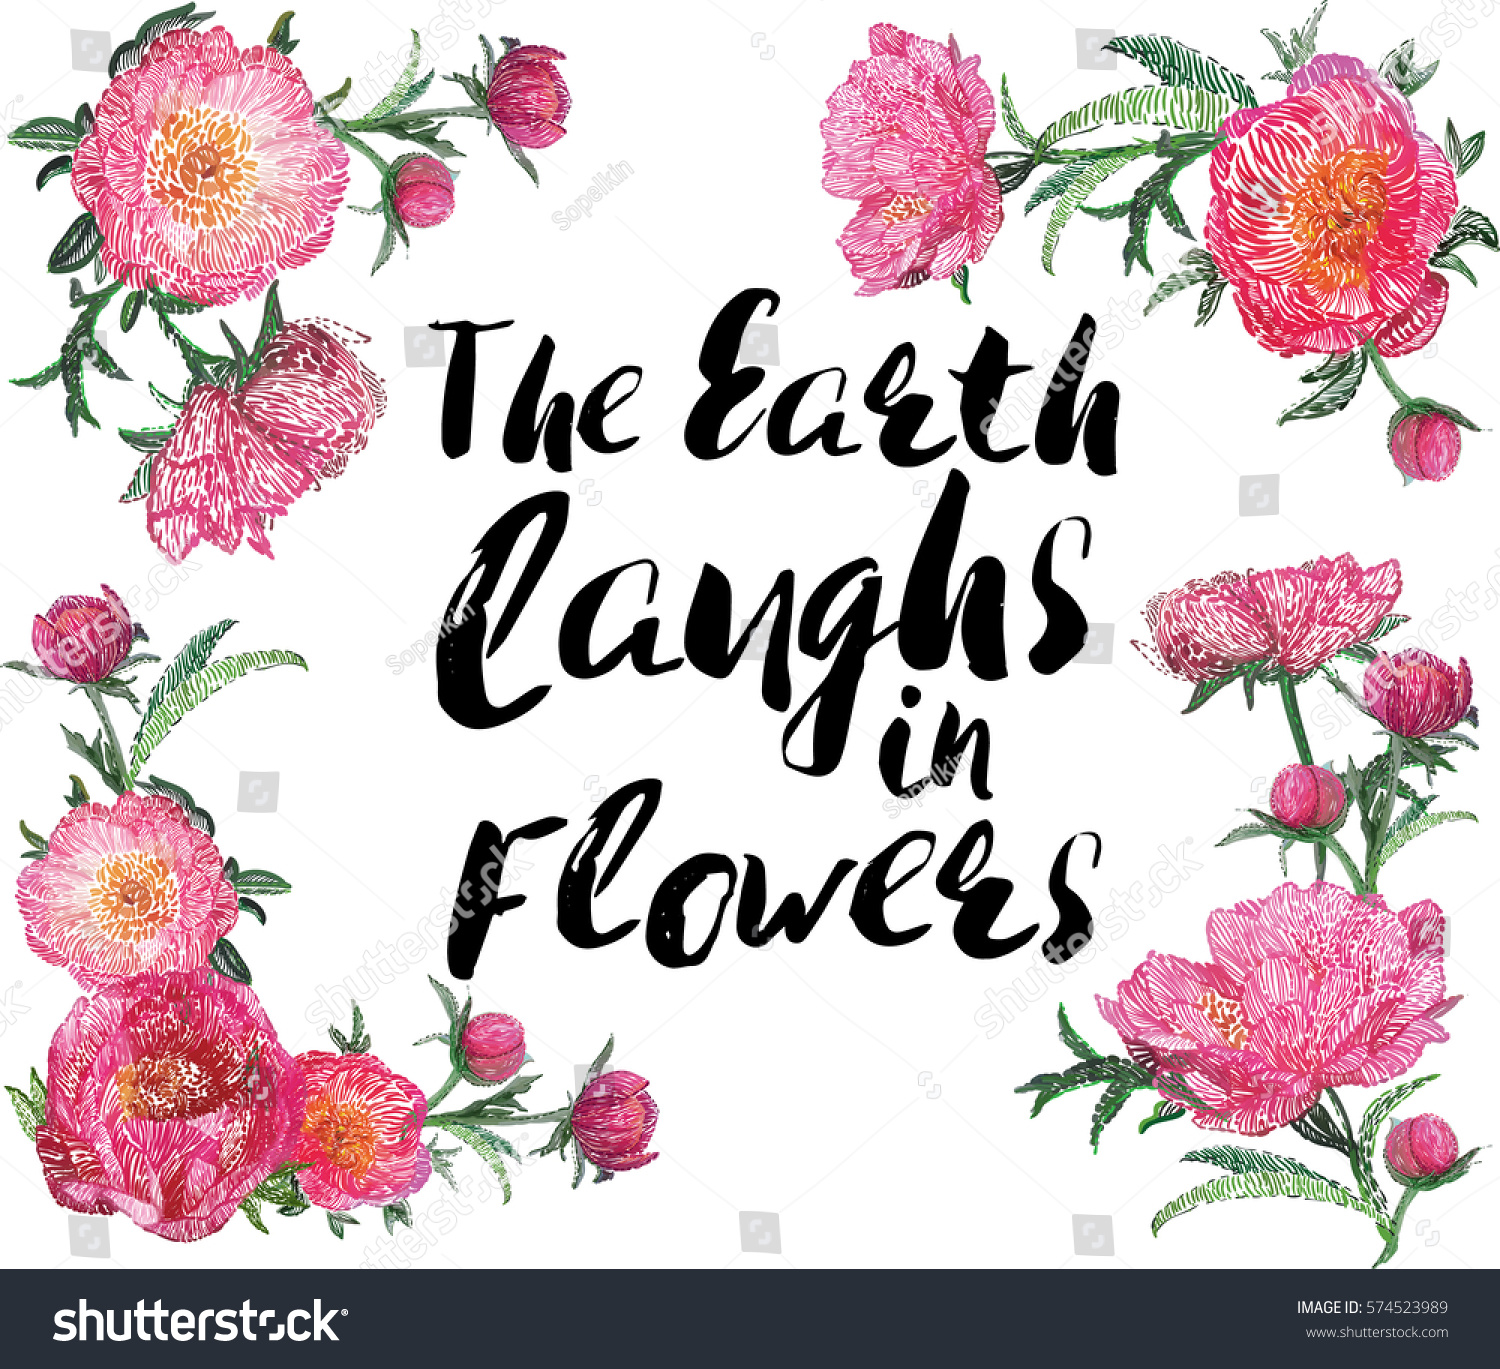 Earth laughs flowers quote blossom stock vector